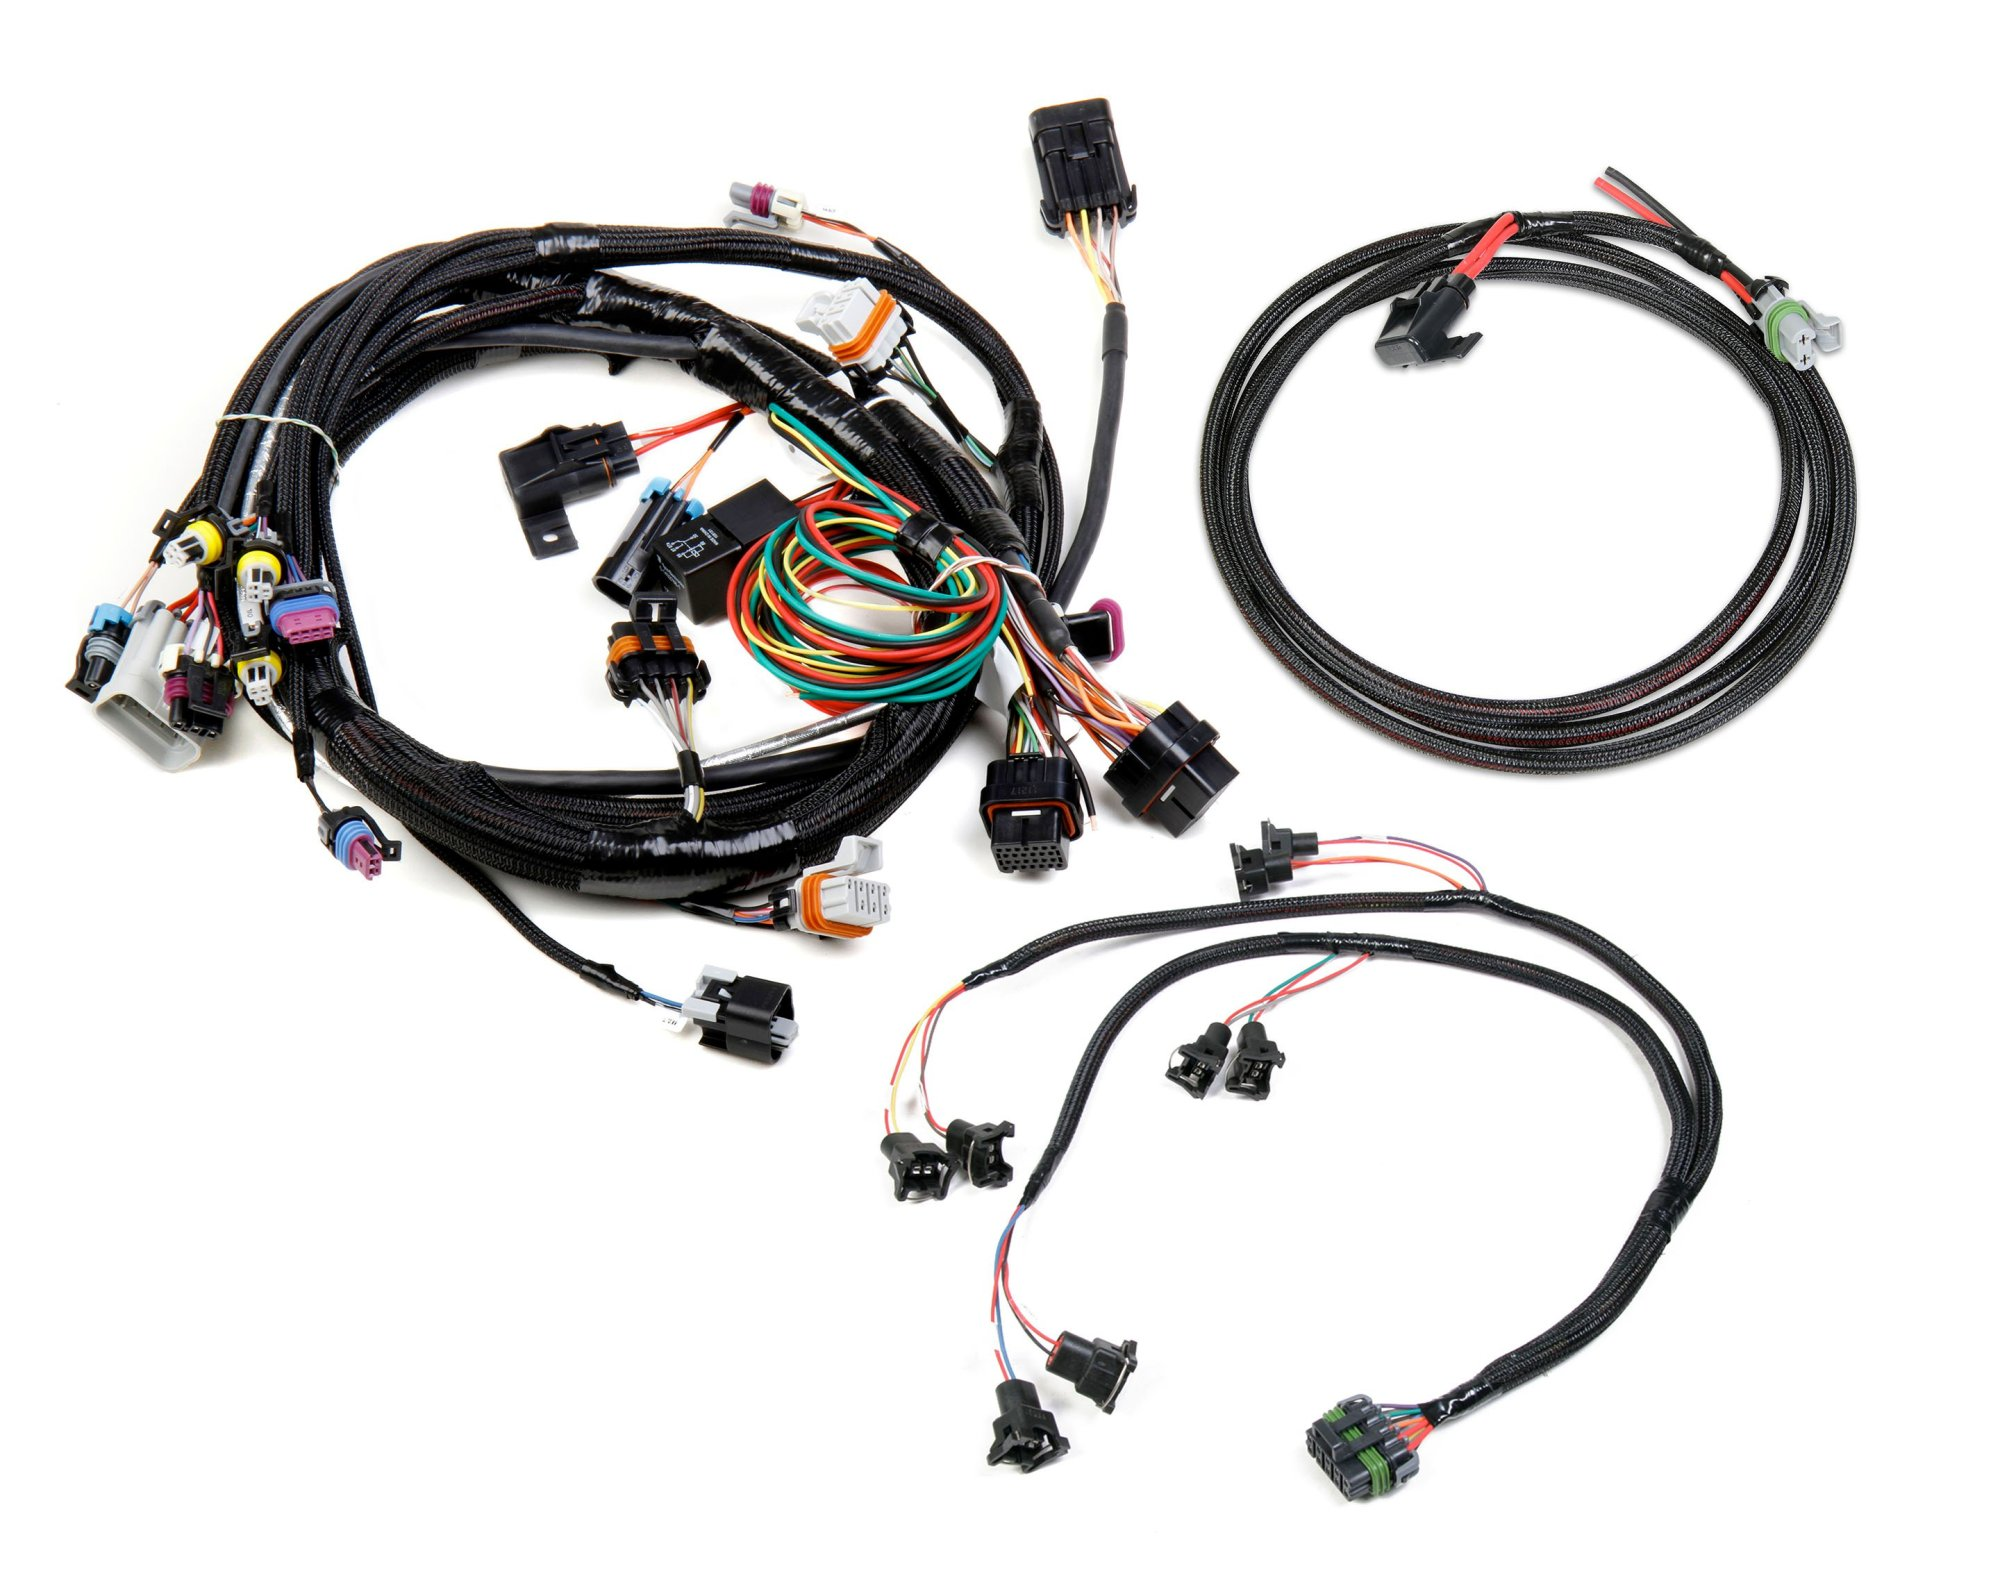 hight resolution of 558 500 gm ls 24x efi harness kit image